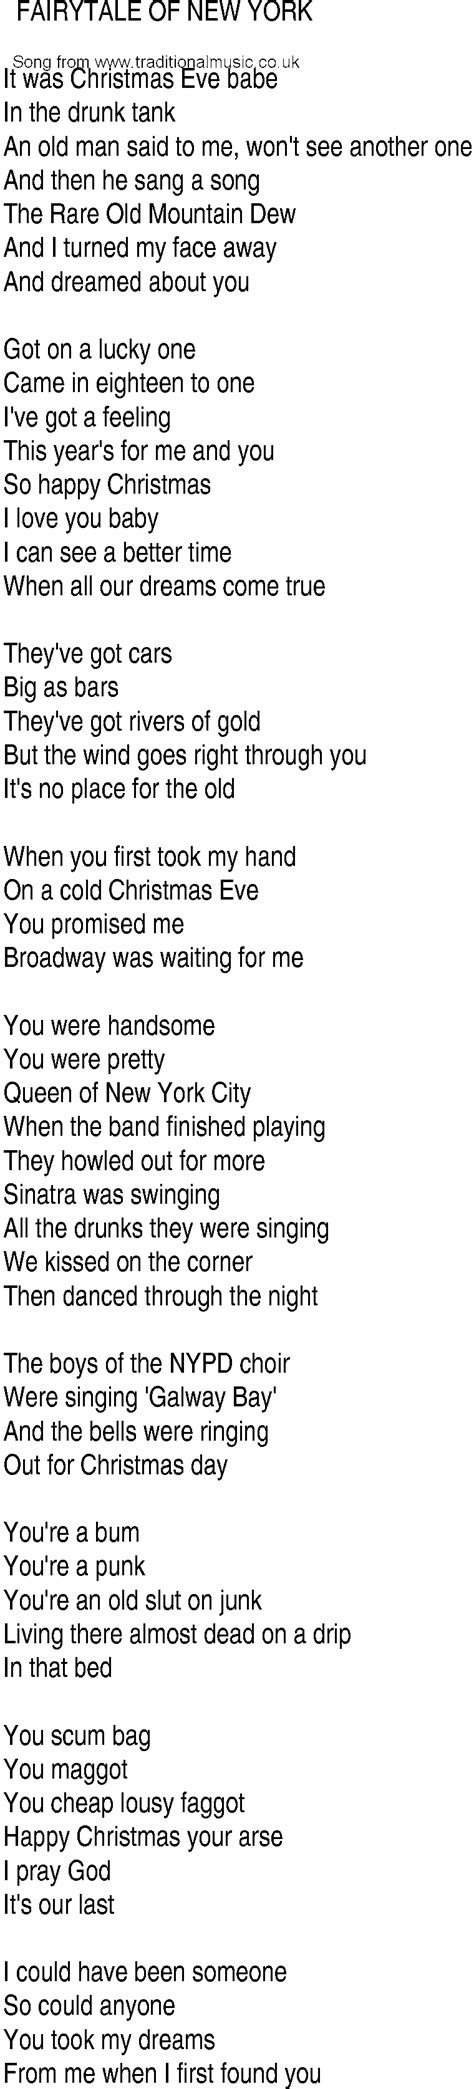 song nyc irish music song and ballad lyrics for fairytale of new york